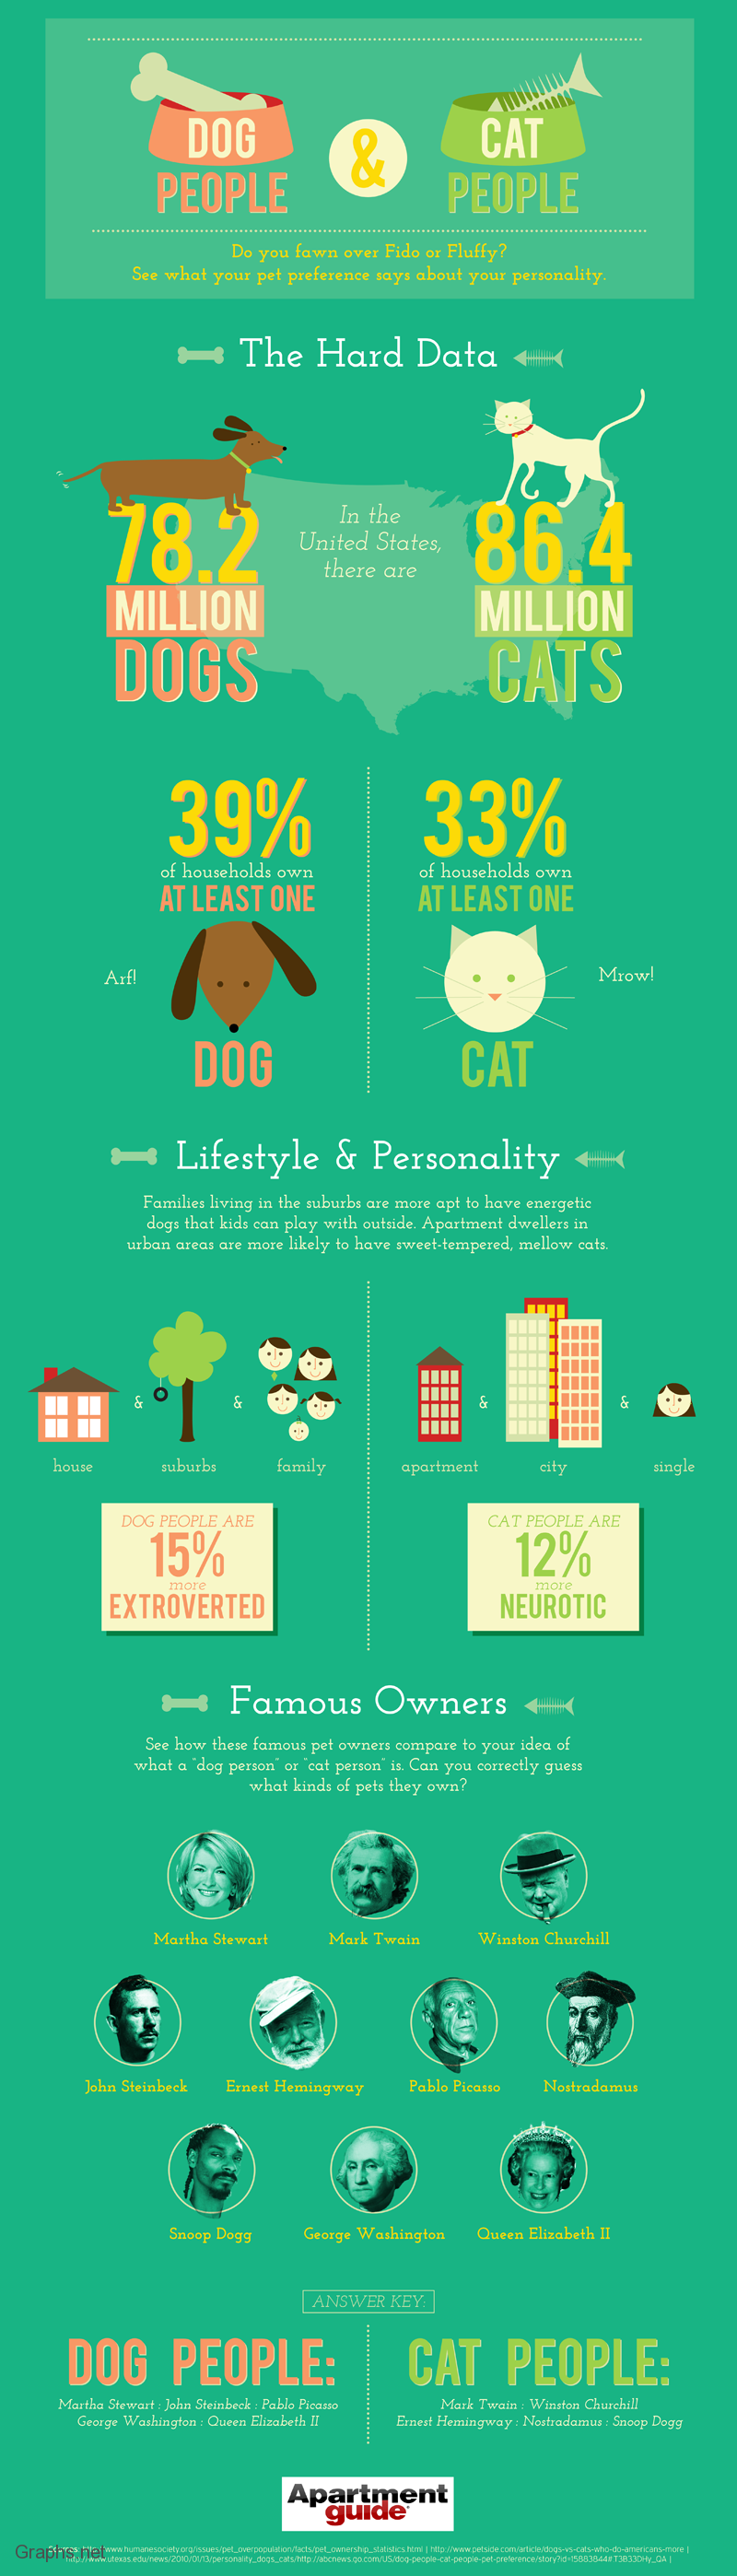 Personality assessment of cats and dog owners